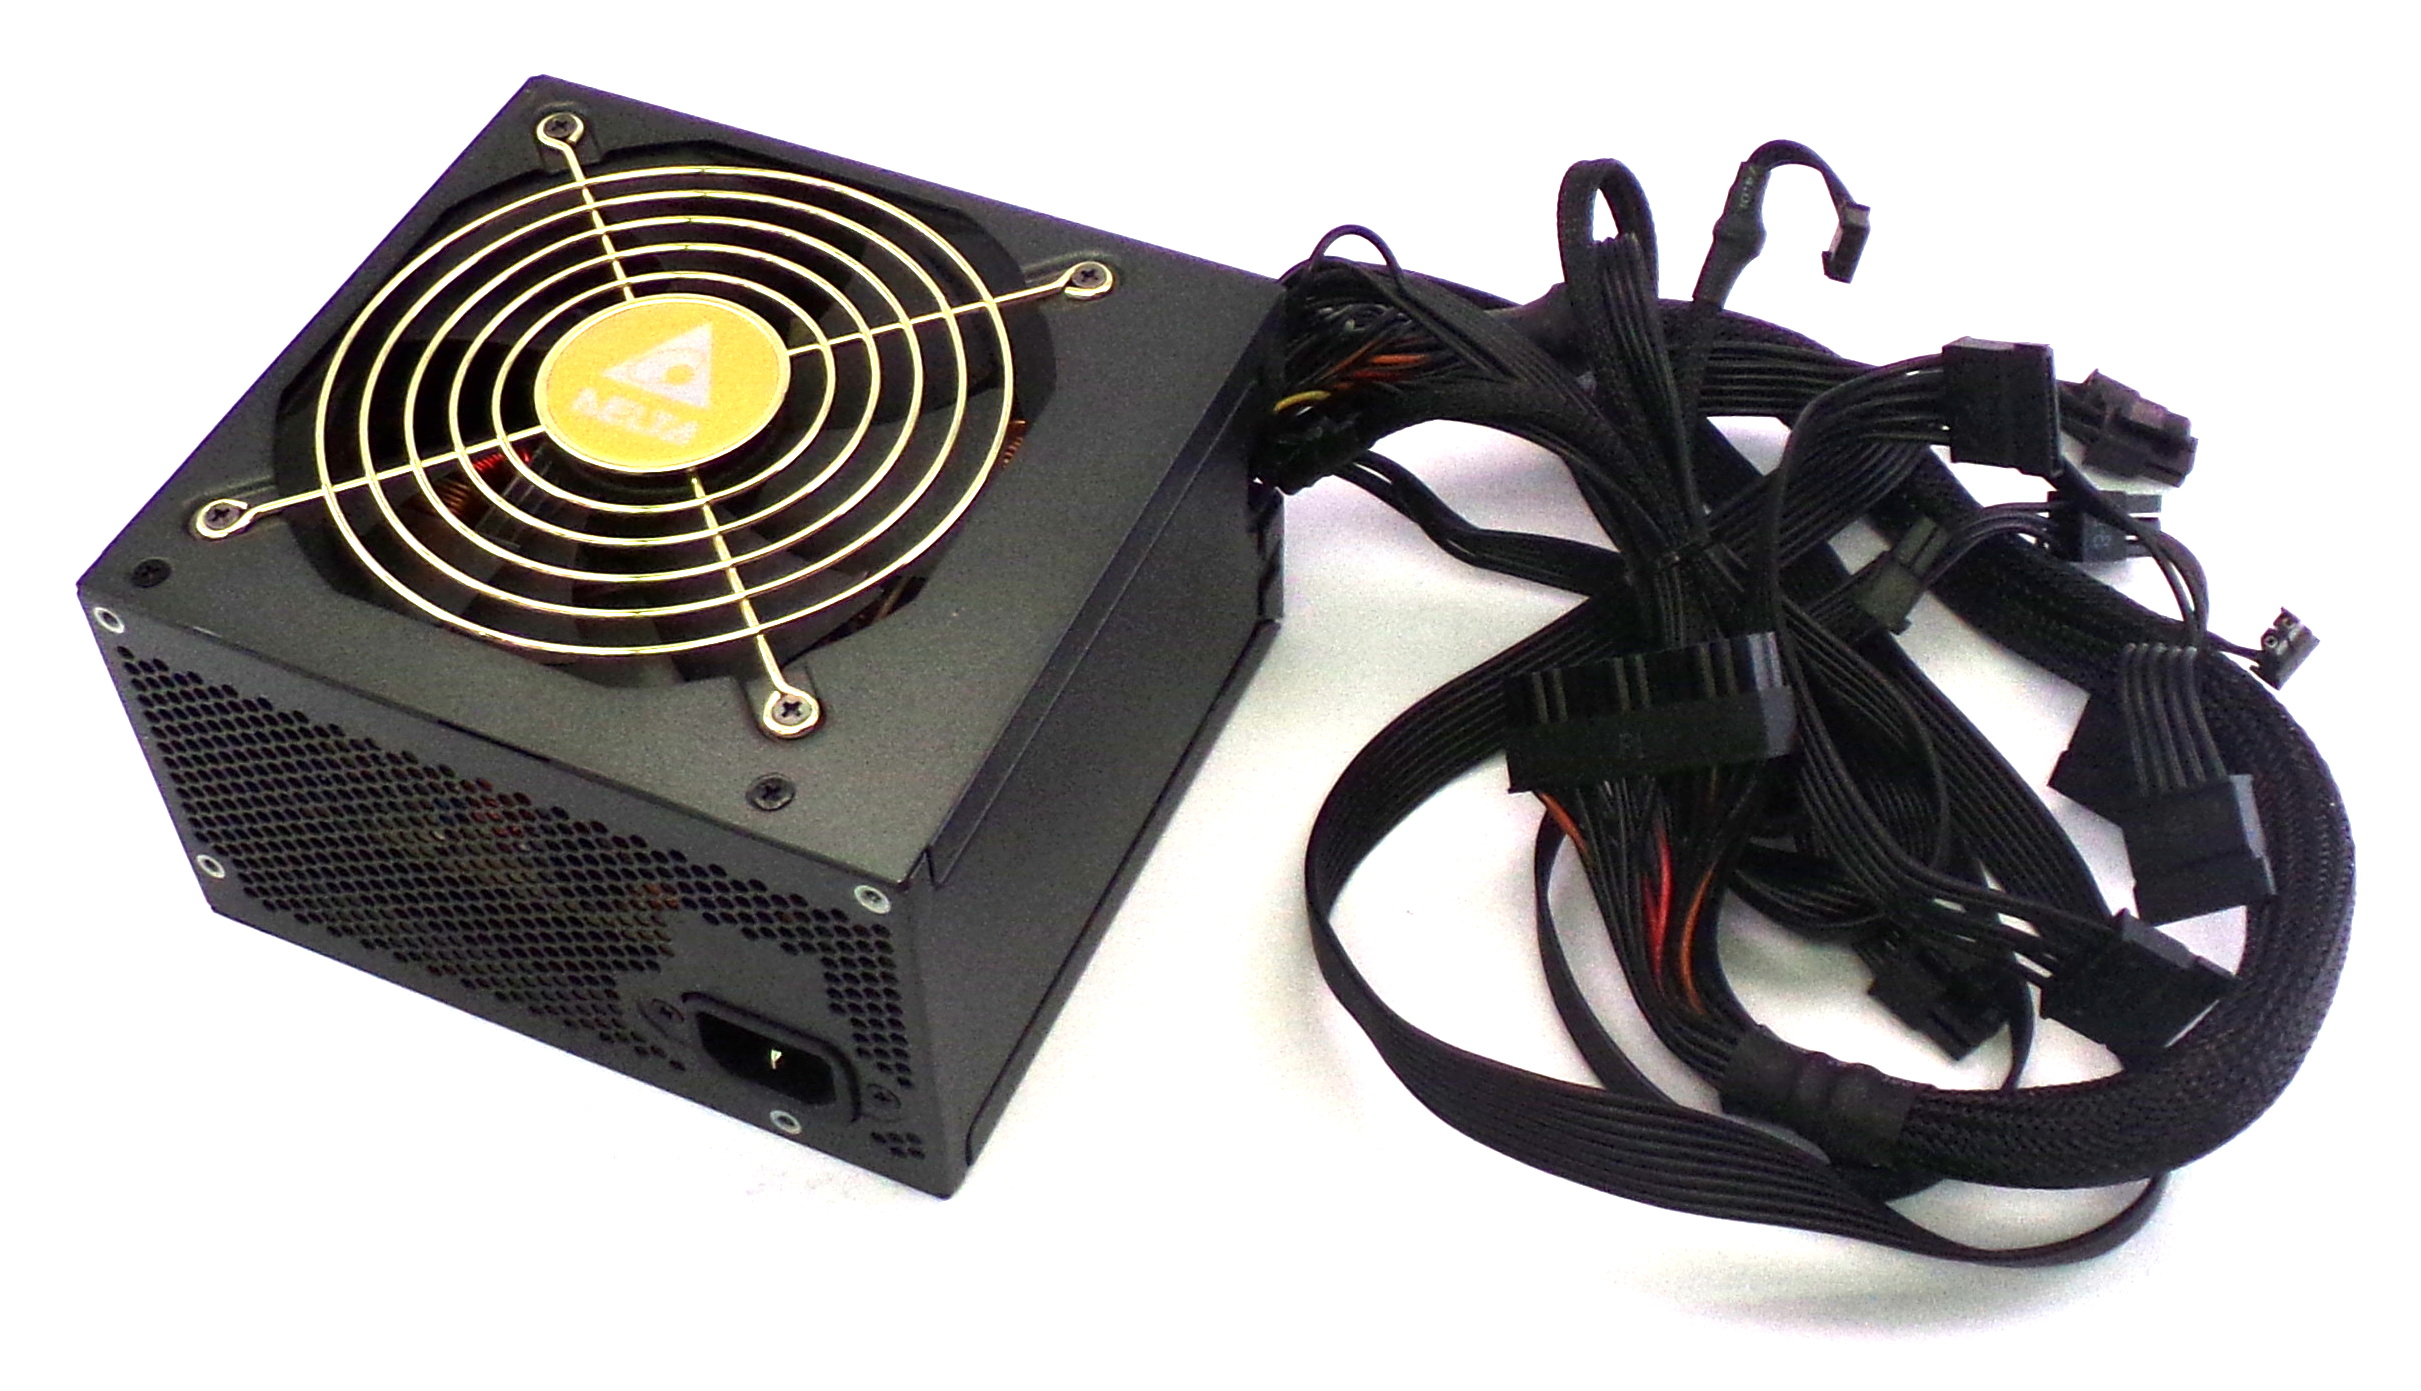 MSI S93-0211010-D04 550W Switching Power Supply - Delta GPS-550LB